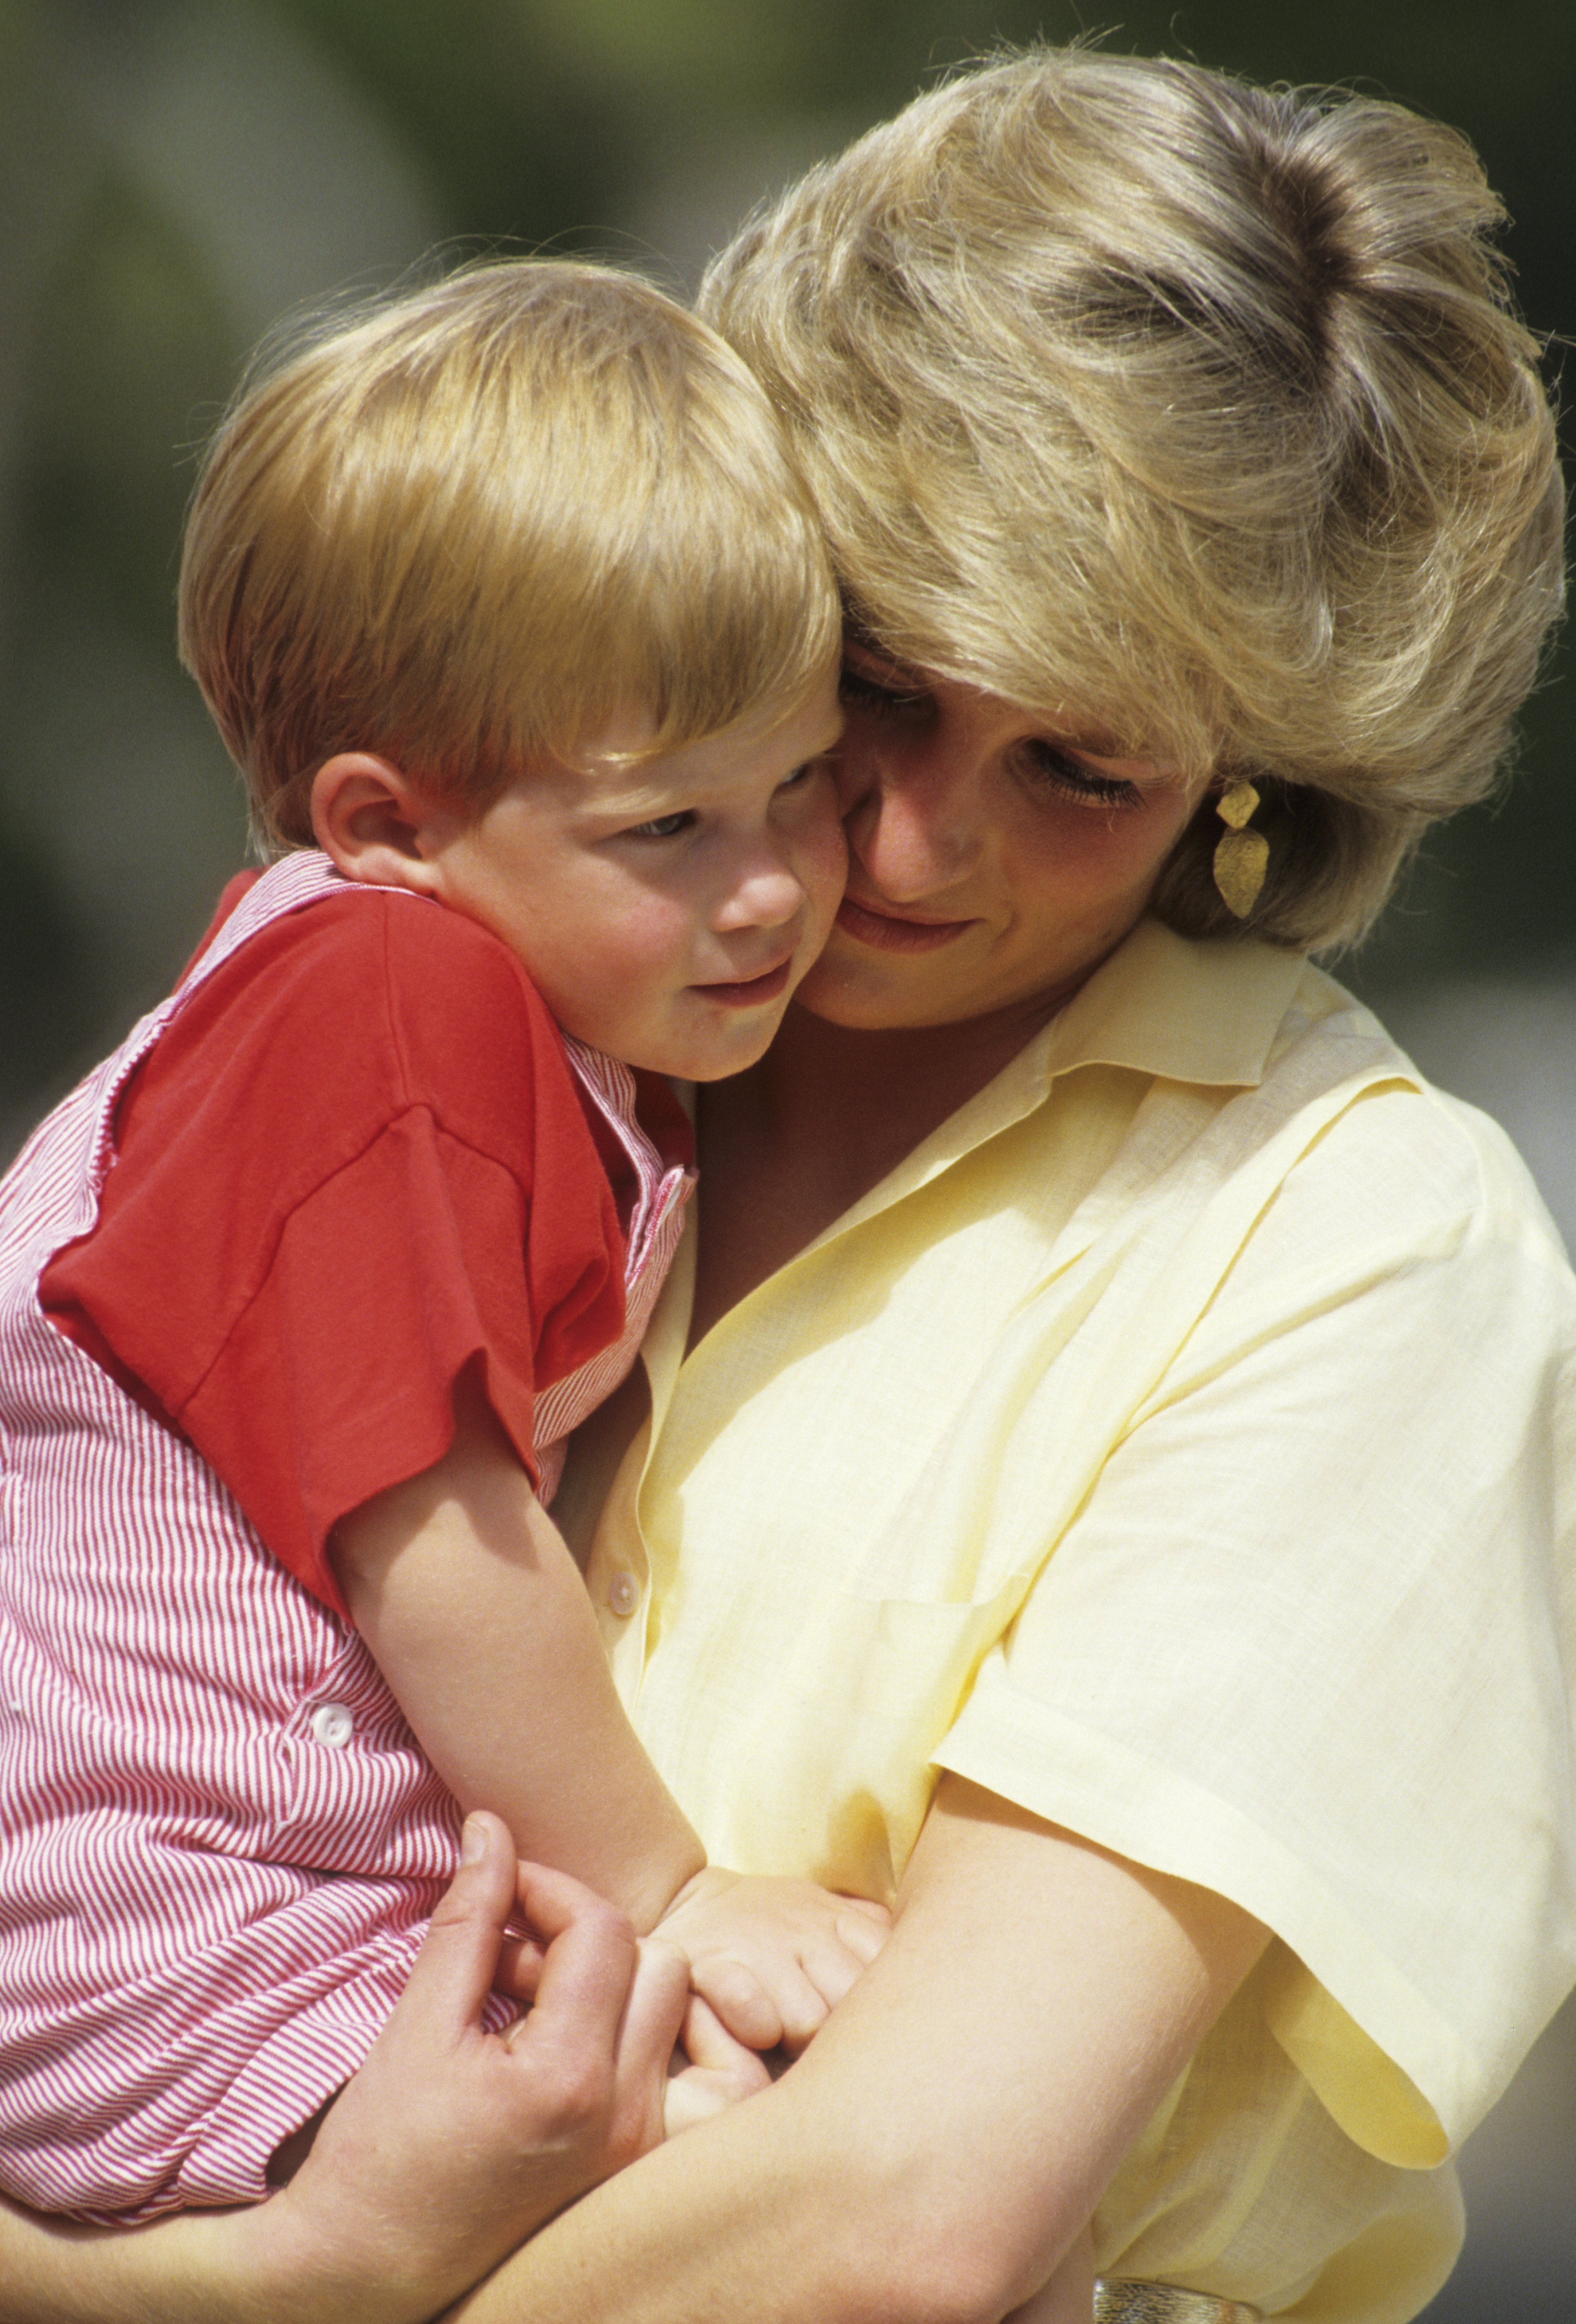 Diana, the Princess of Wales, holding her son Prince Harry while on holiday in Majorca, Spain in 1987 | Photo: Getty Images